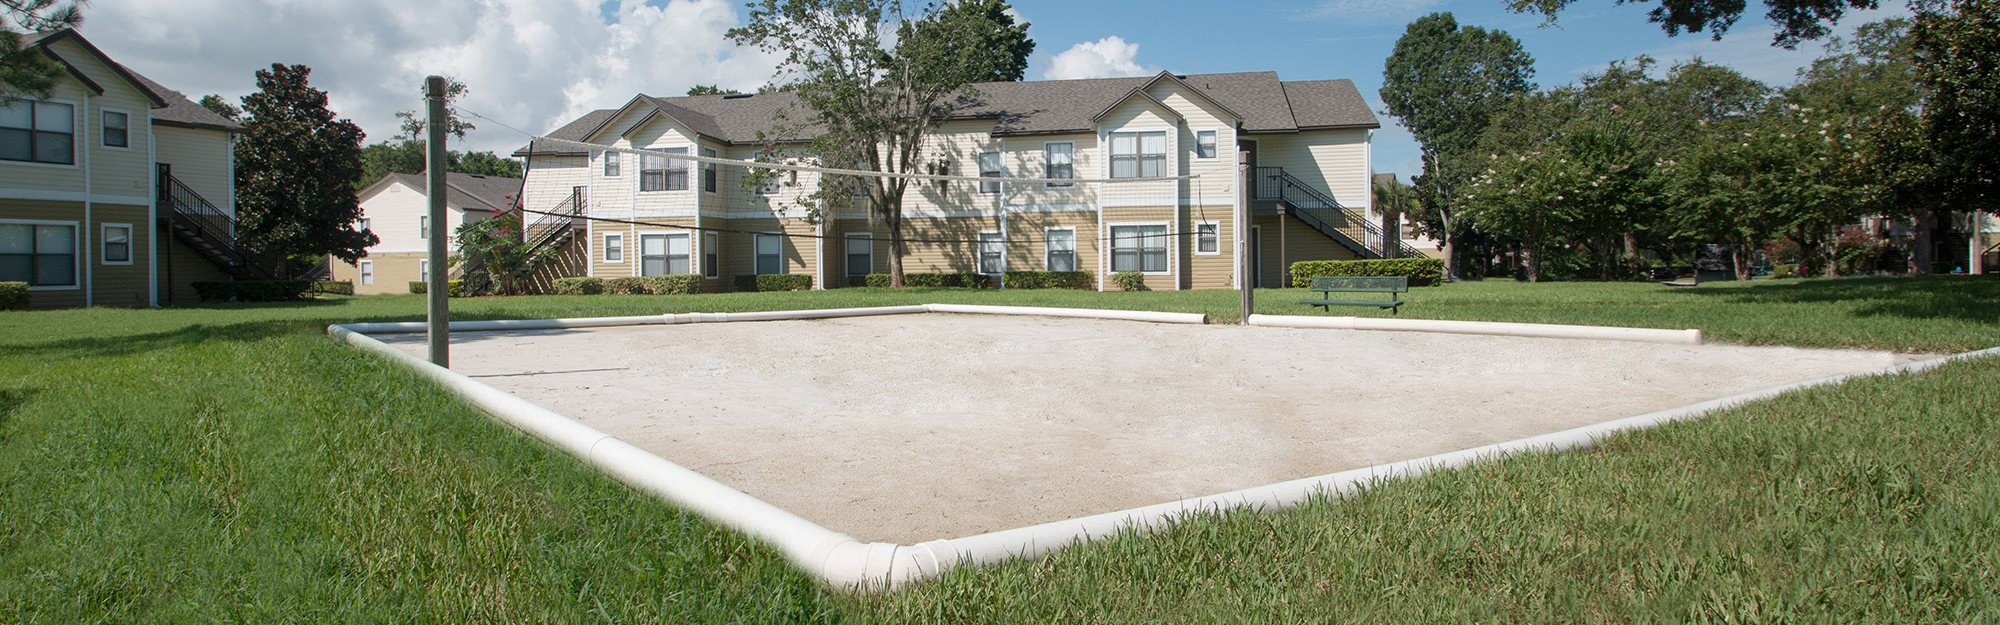 Floor Plans | Country Gardens Apartments | Concord Rents | Concord ...